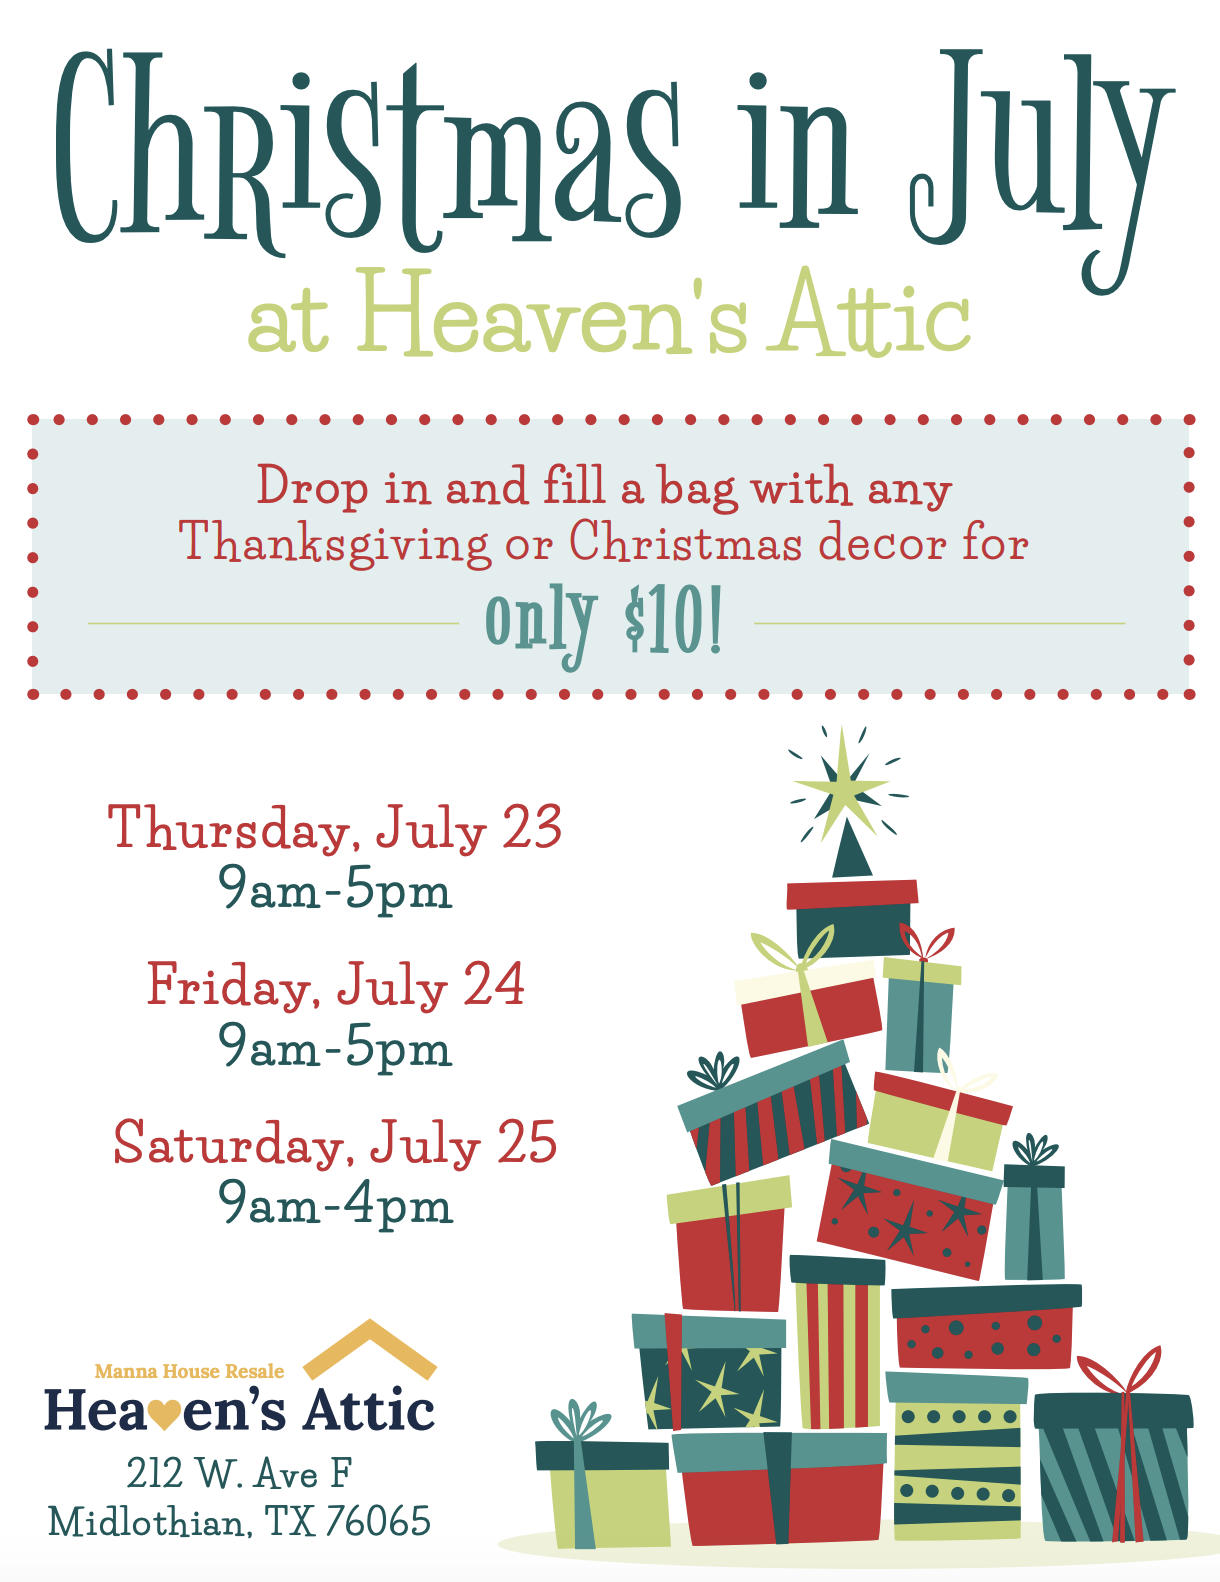 Heaven's Attic resale boutique thrift store Christmas in July sale promotion.